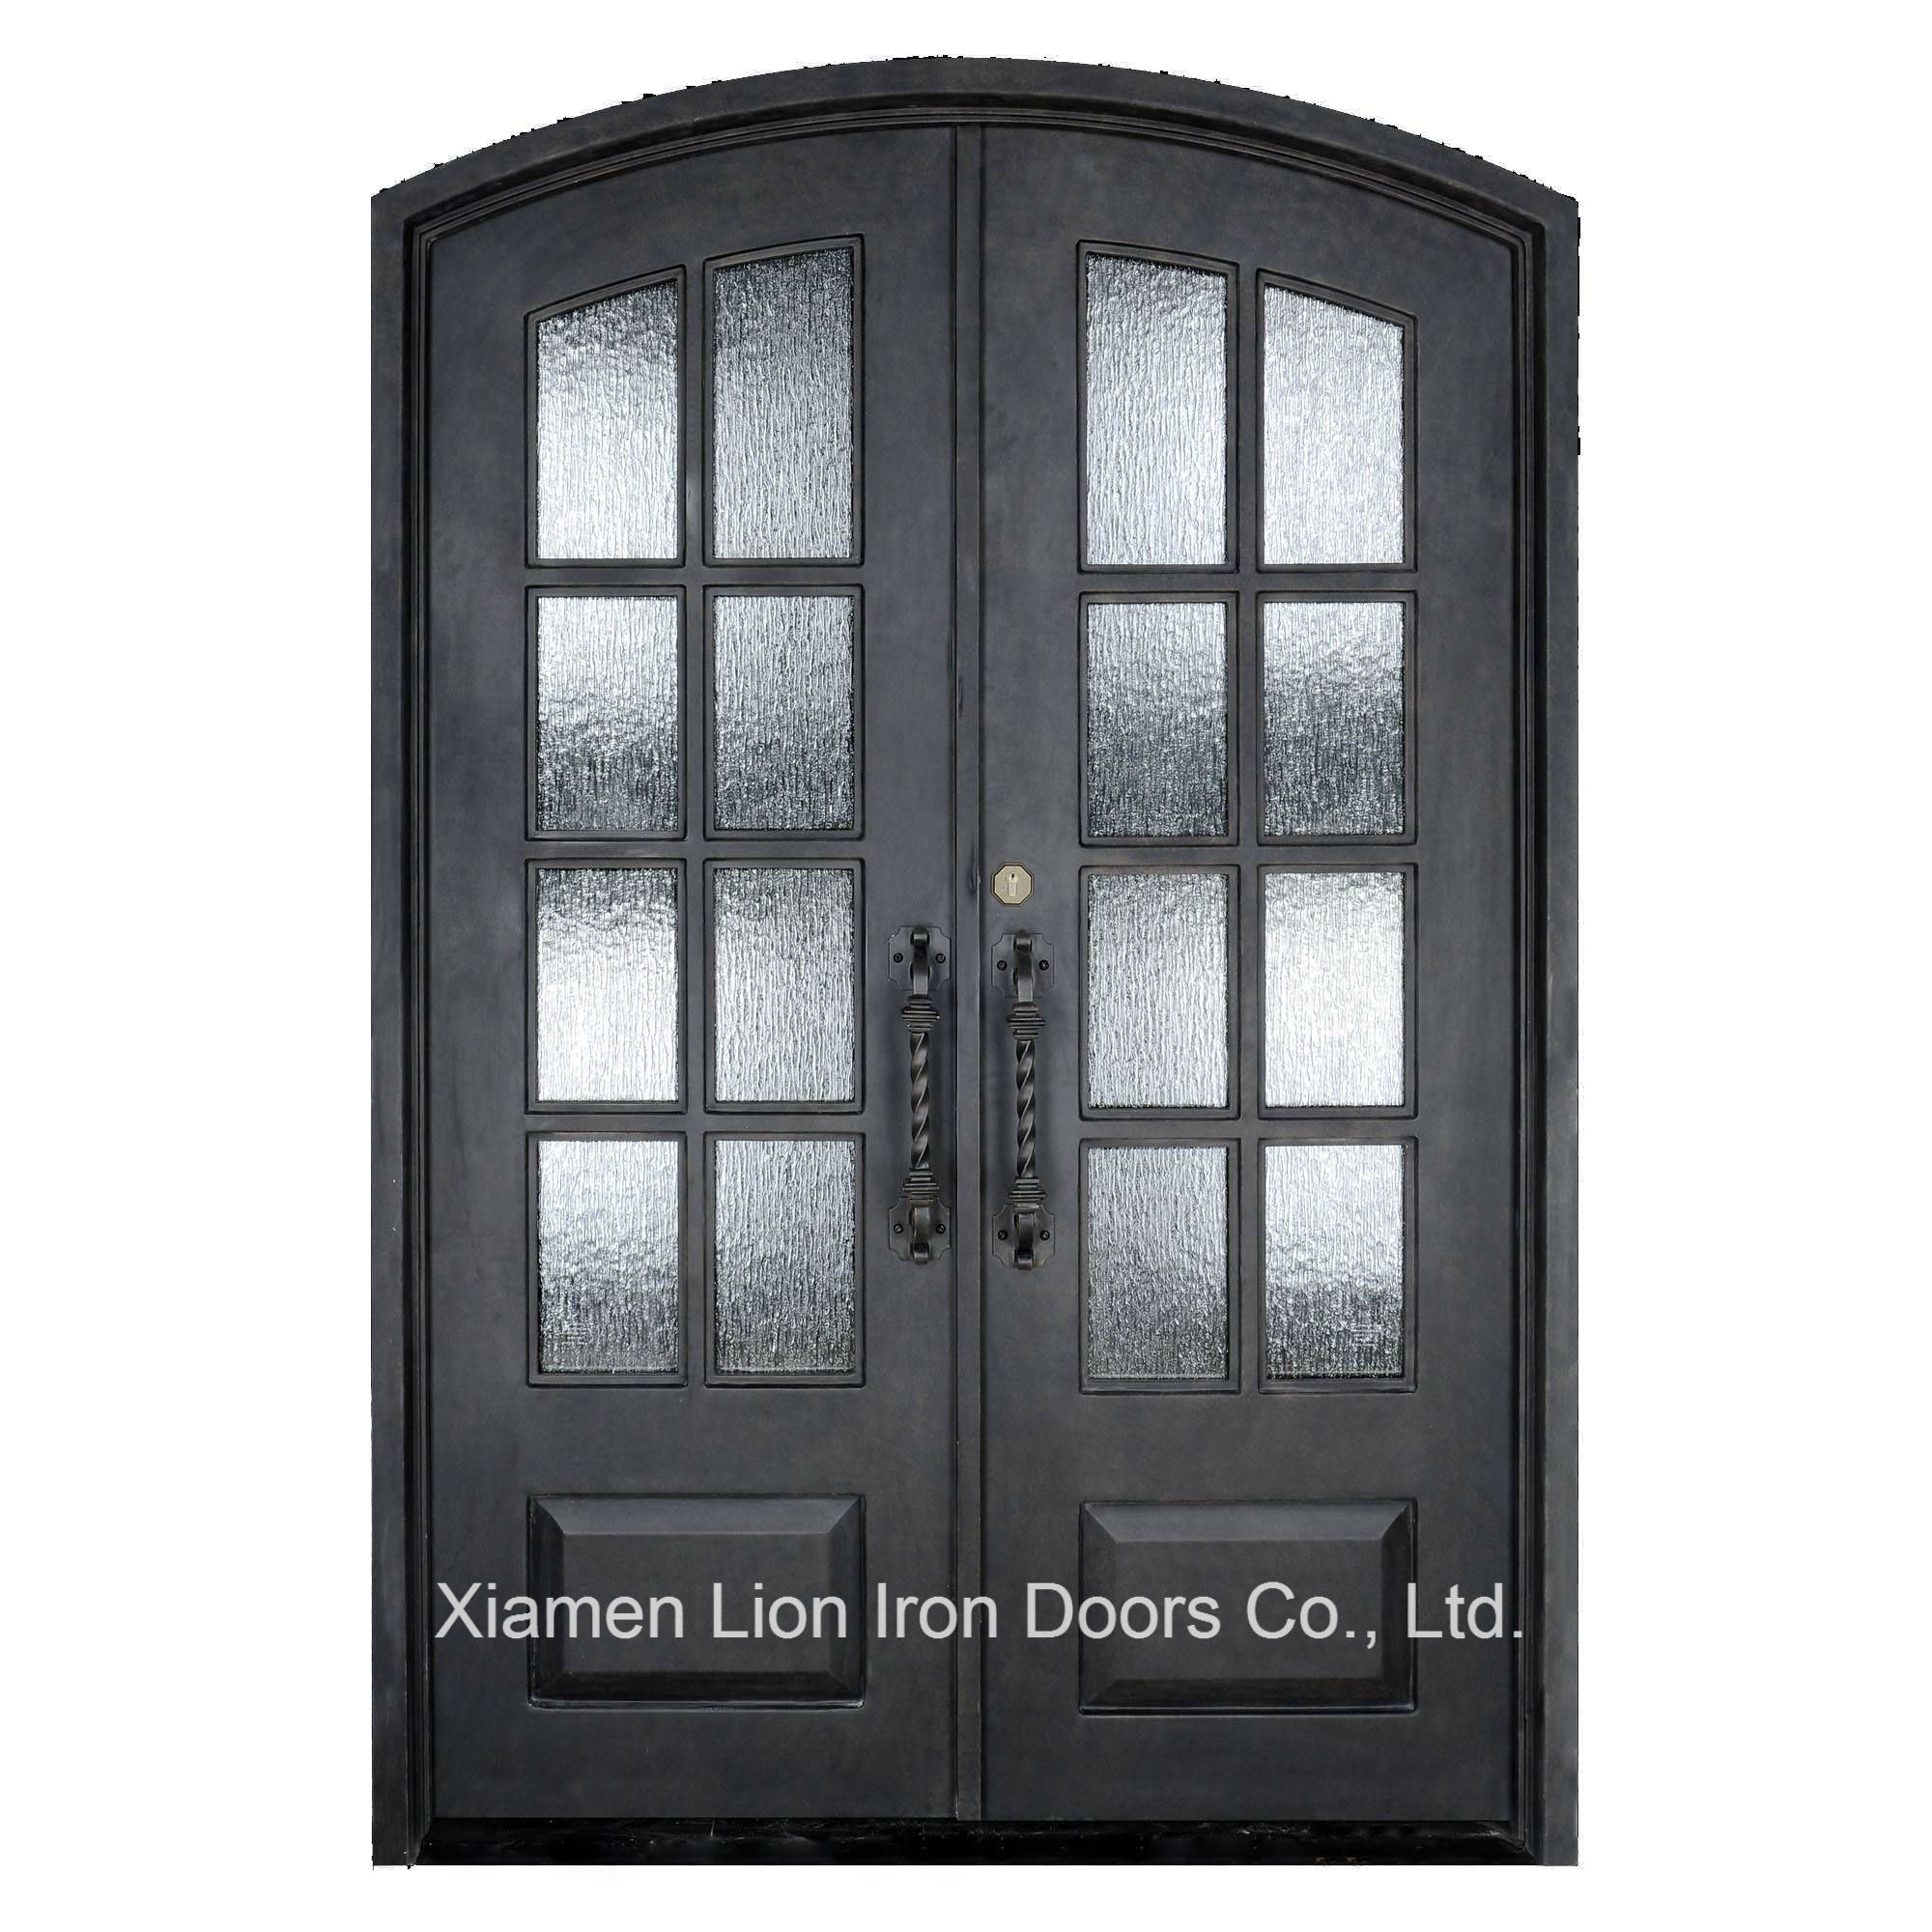 exterior steel doors. Exterior Steel Double Iron Door Grill Safety Doors .